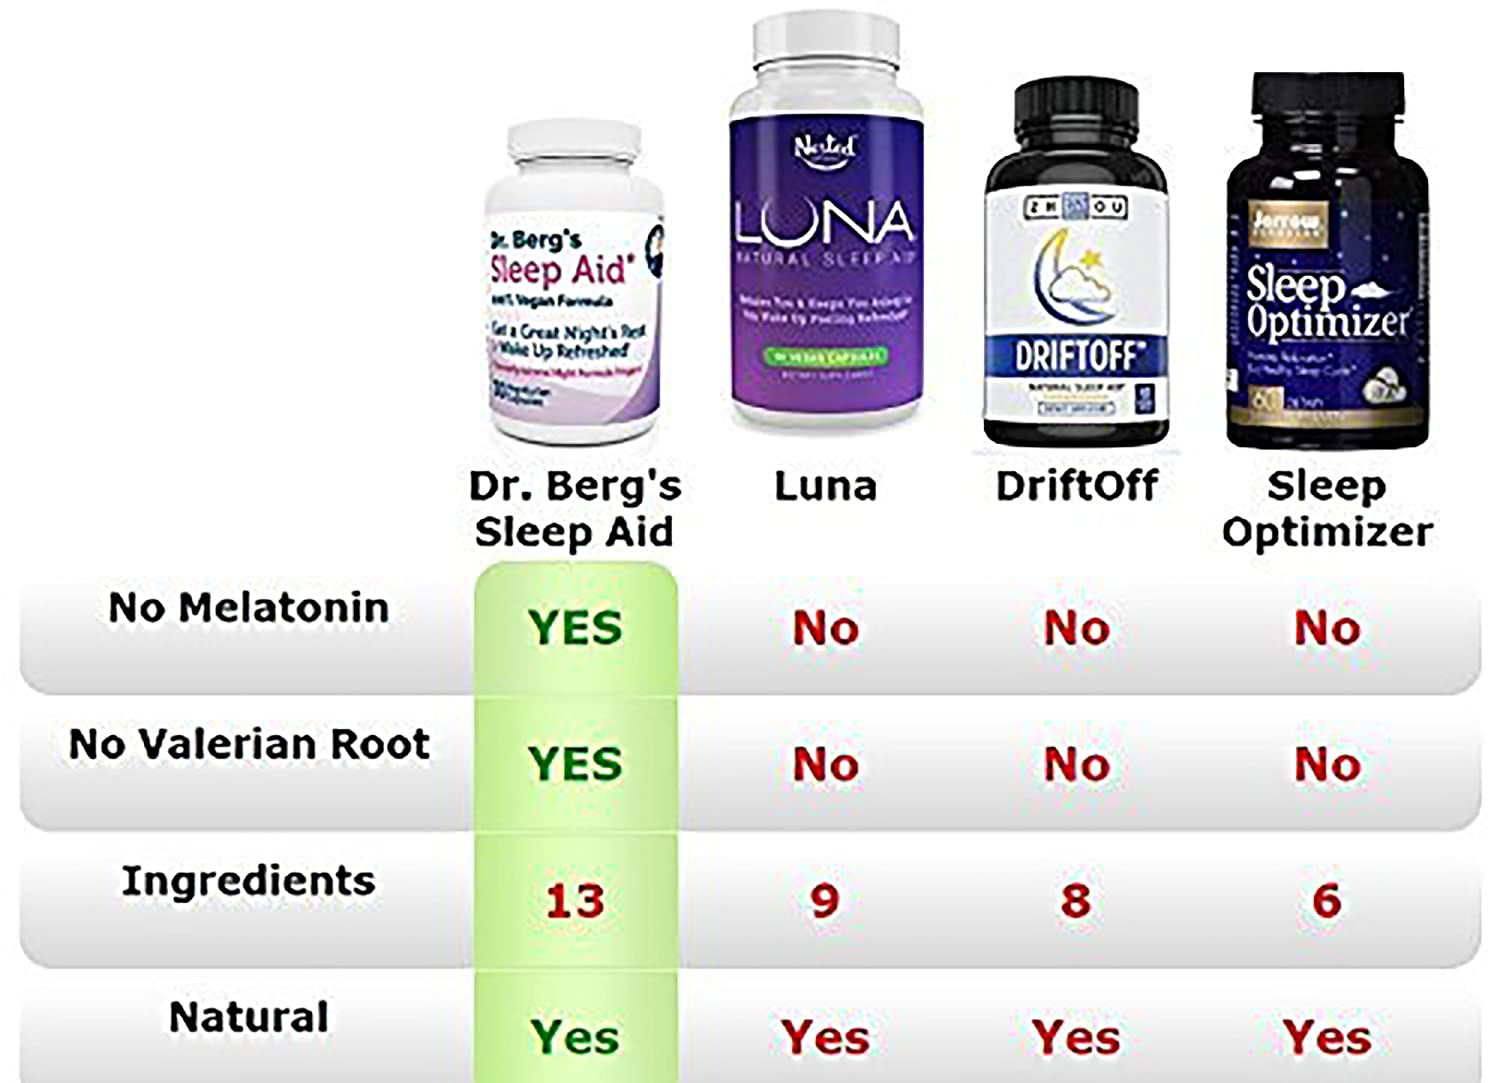 Amazon.com: Dr. Berg Product – Sleep Aid Vegan Formula – All Natural Support for Normal Sleep Cycles to Fight Fatigue & Stress – Non Habit Forming (3 Pack): ...